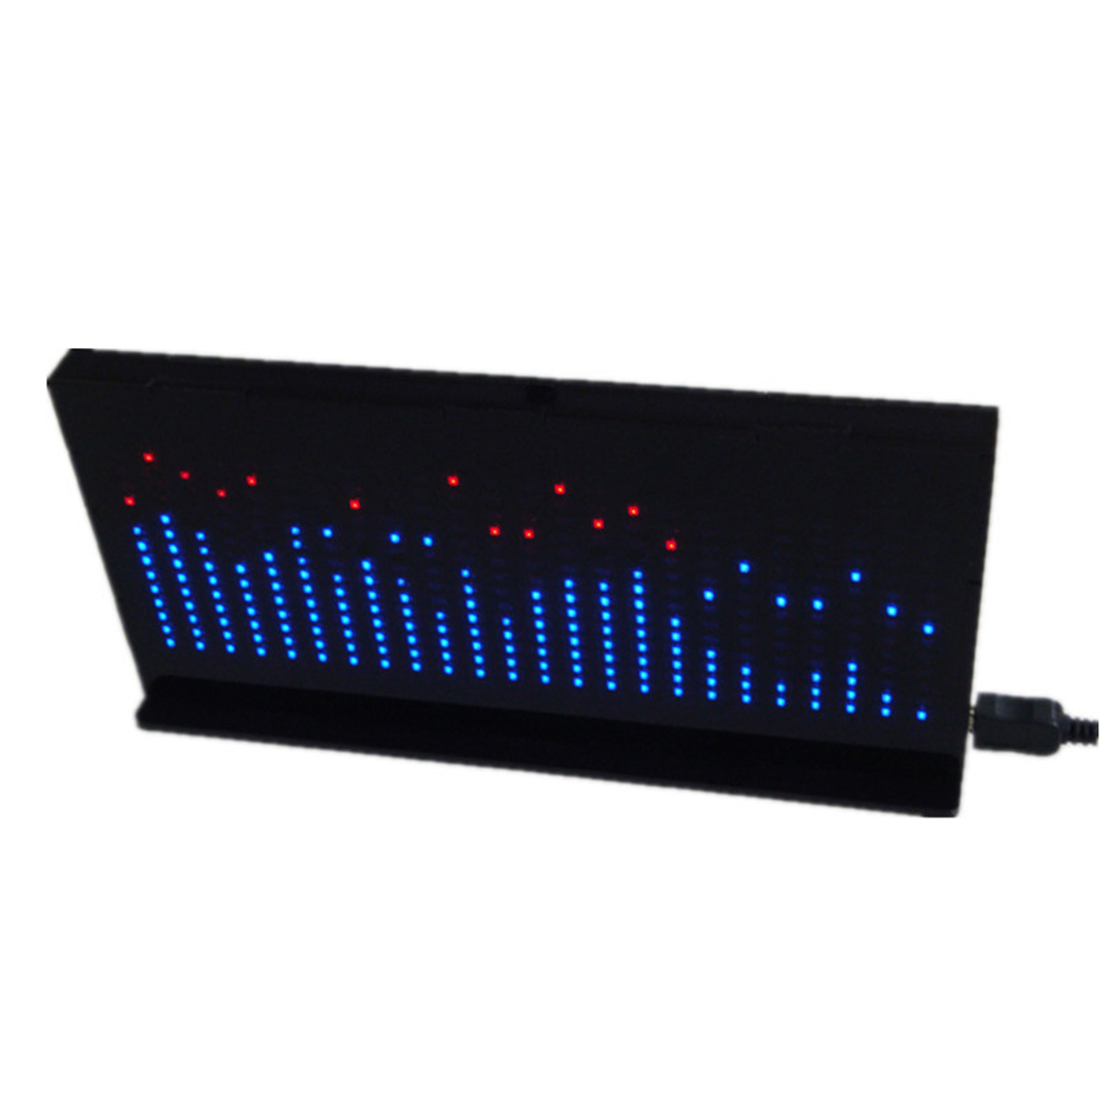 DIY Light Cube Kit AS1424 Music Spectrum LED Display Audio Amplifier Modification Rhythm Lamp - Finished Product Black